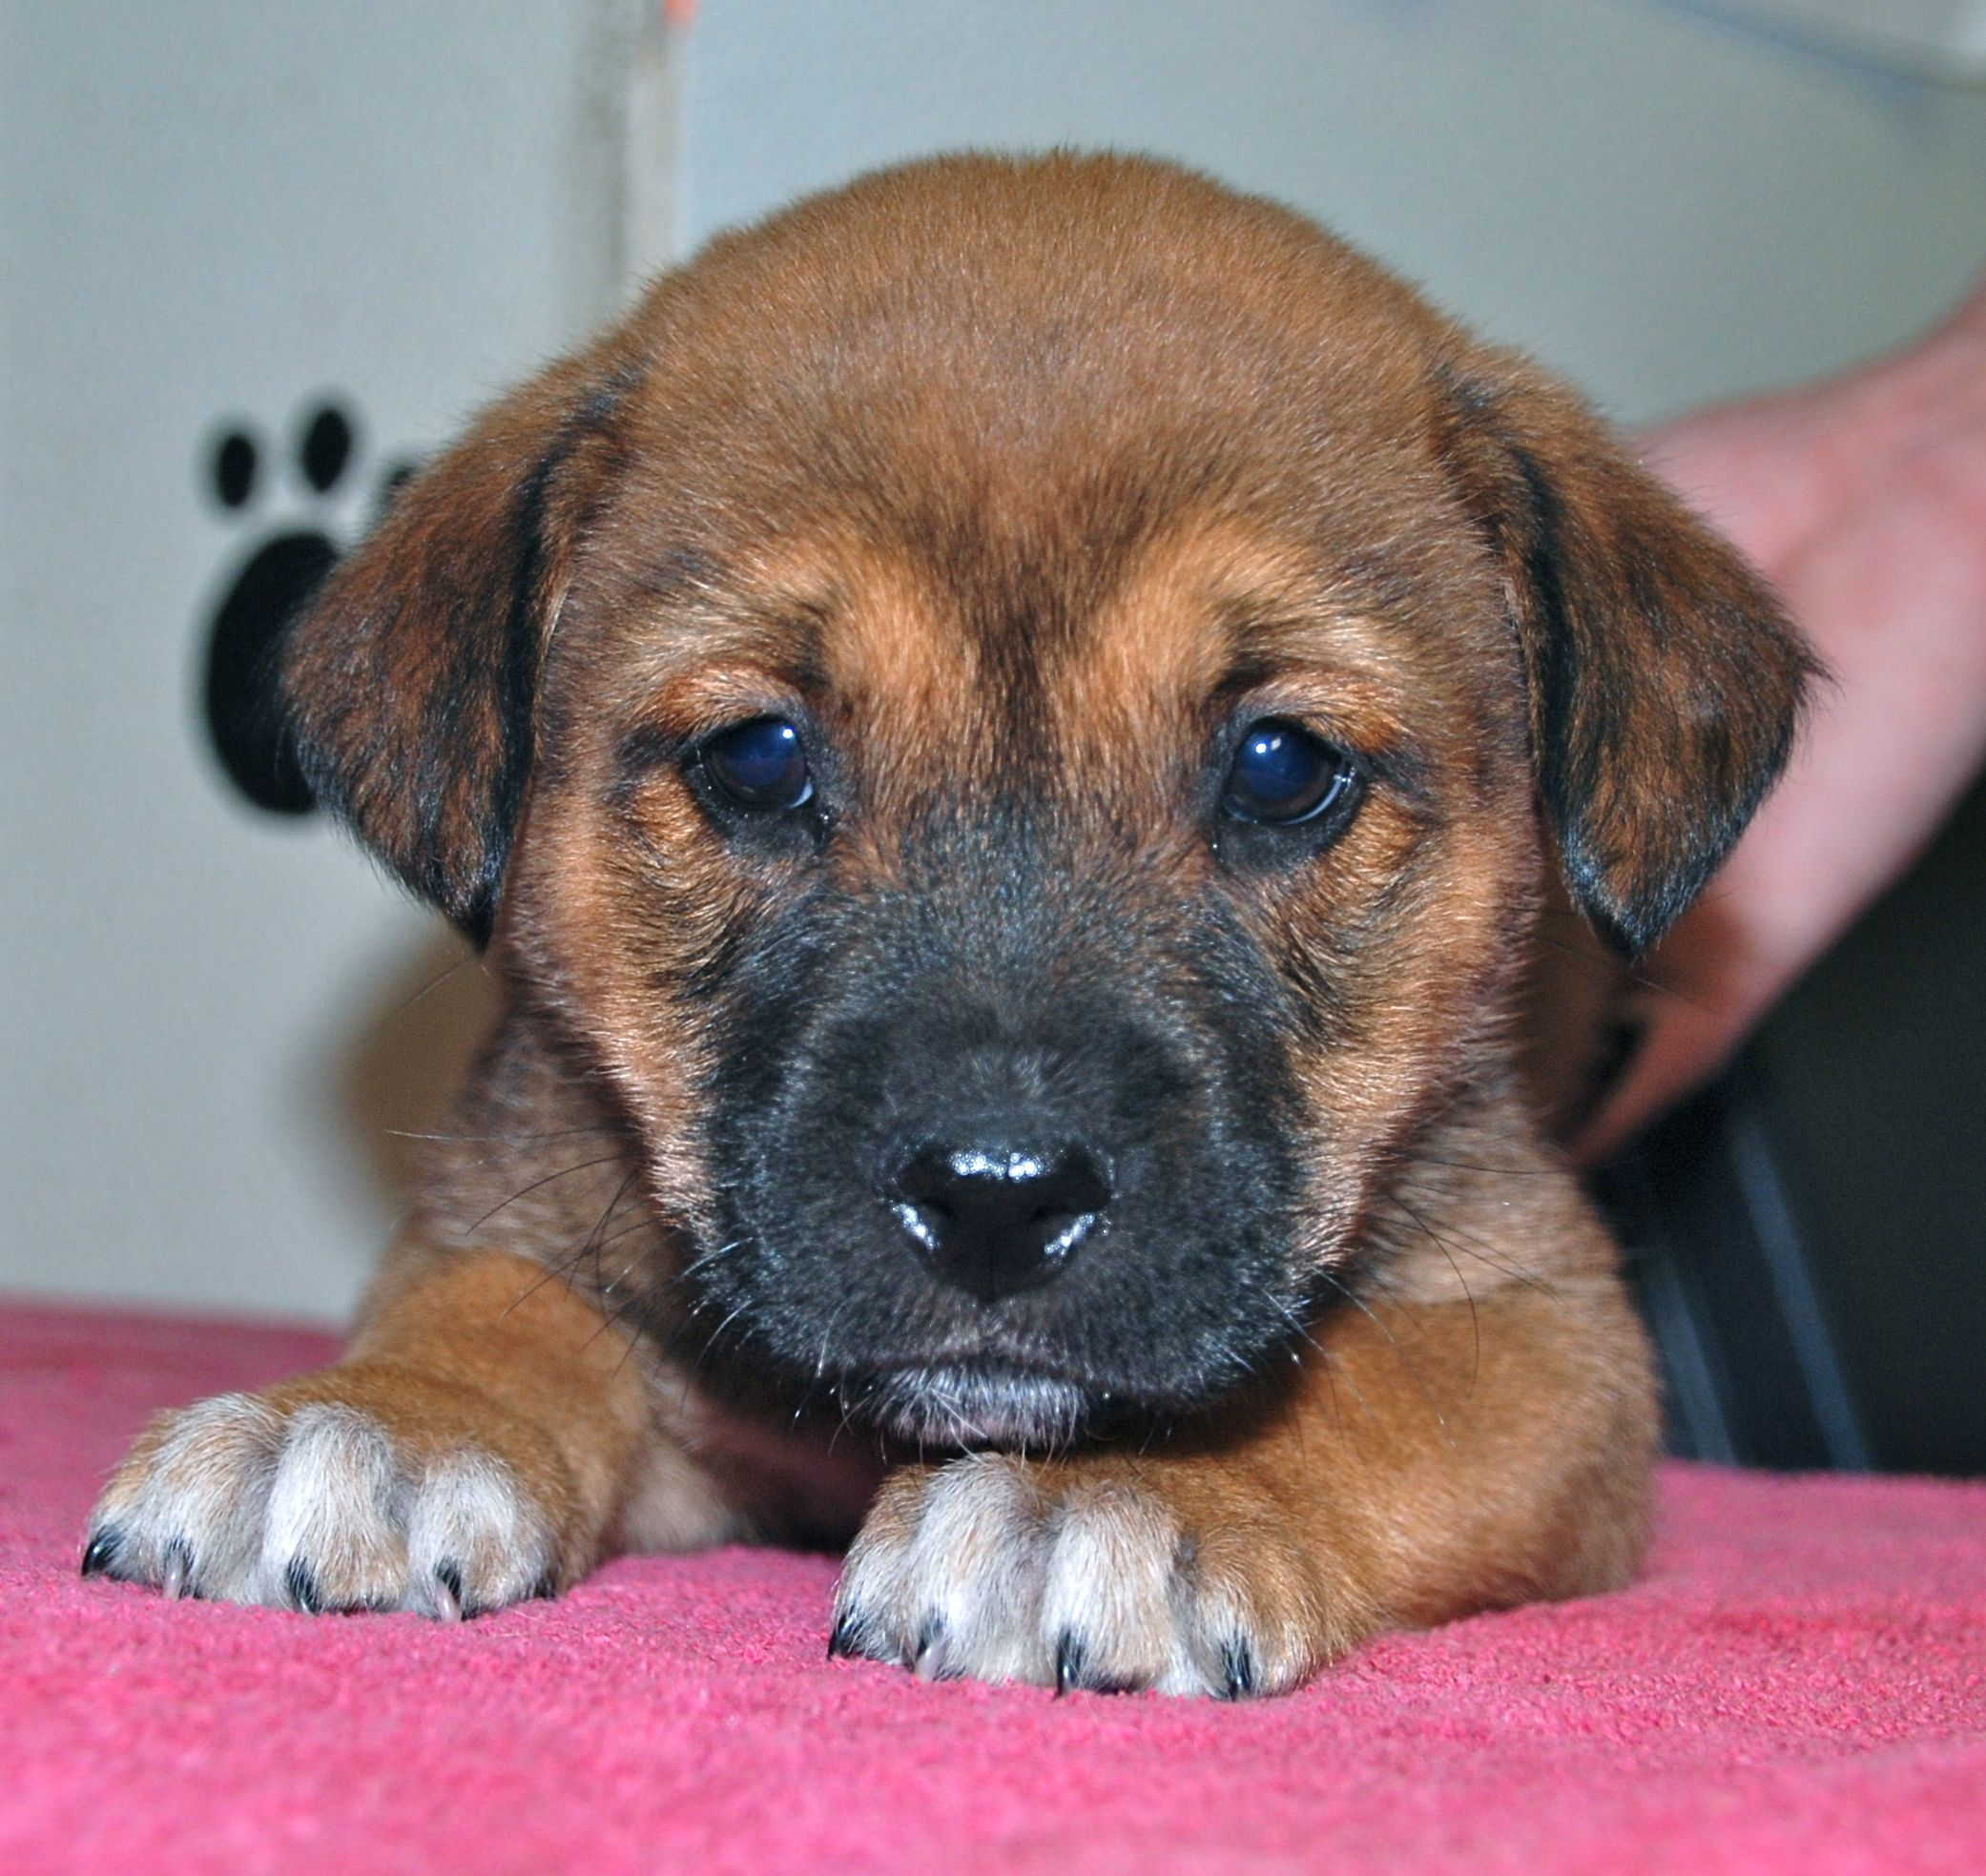 Tallulah is a female hound mix puppy. For adoption